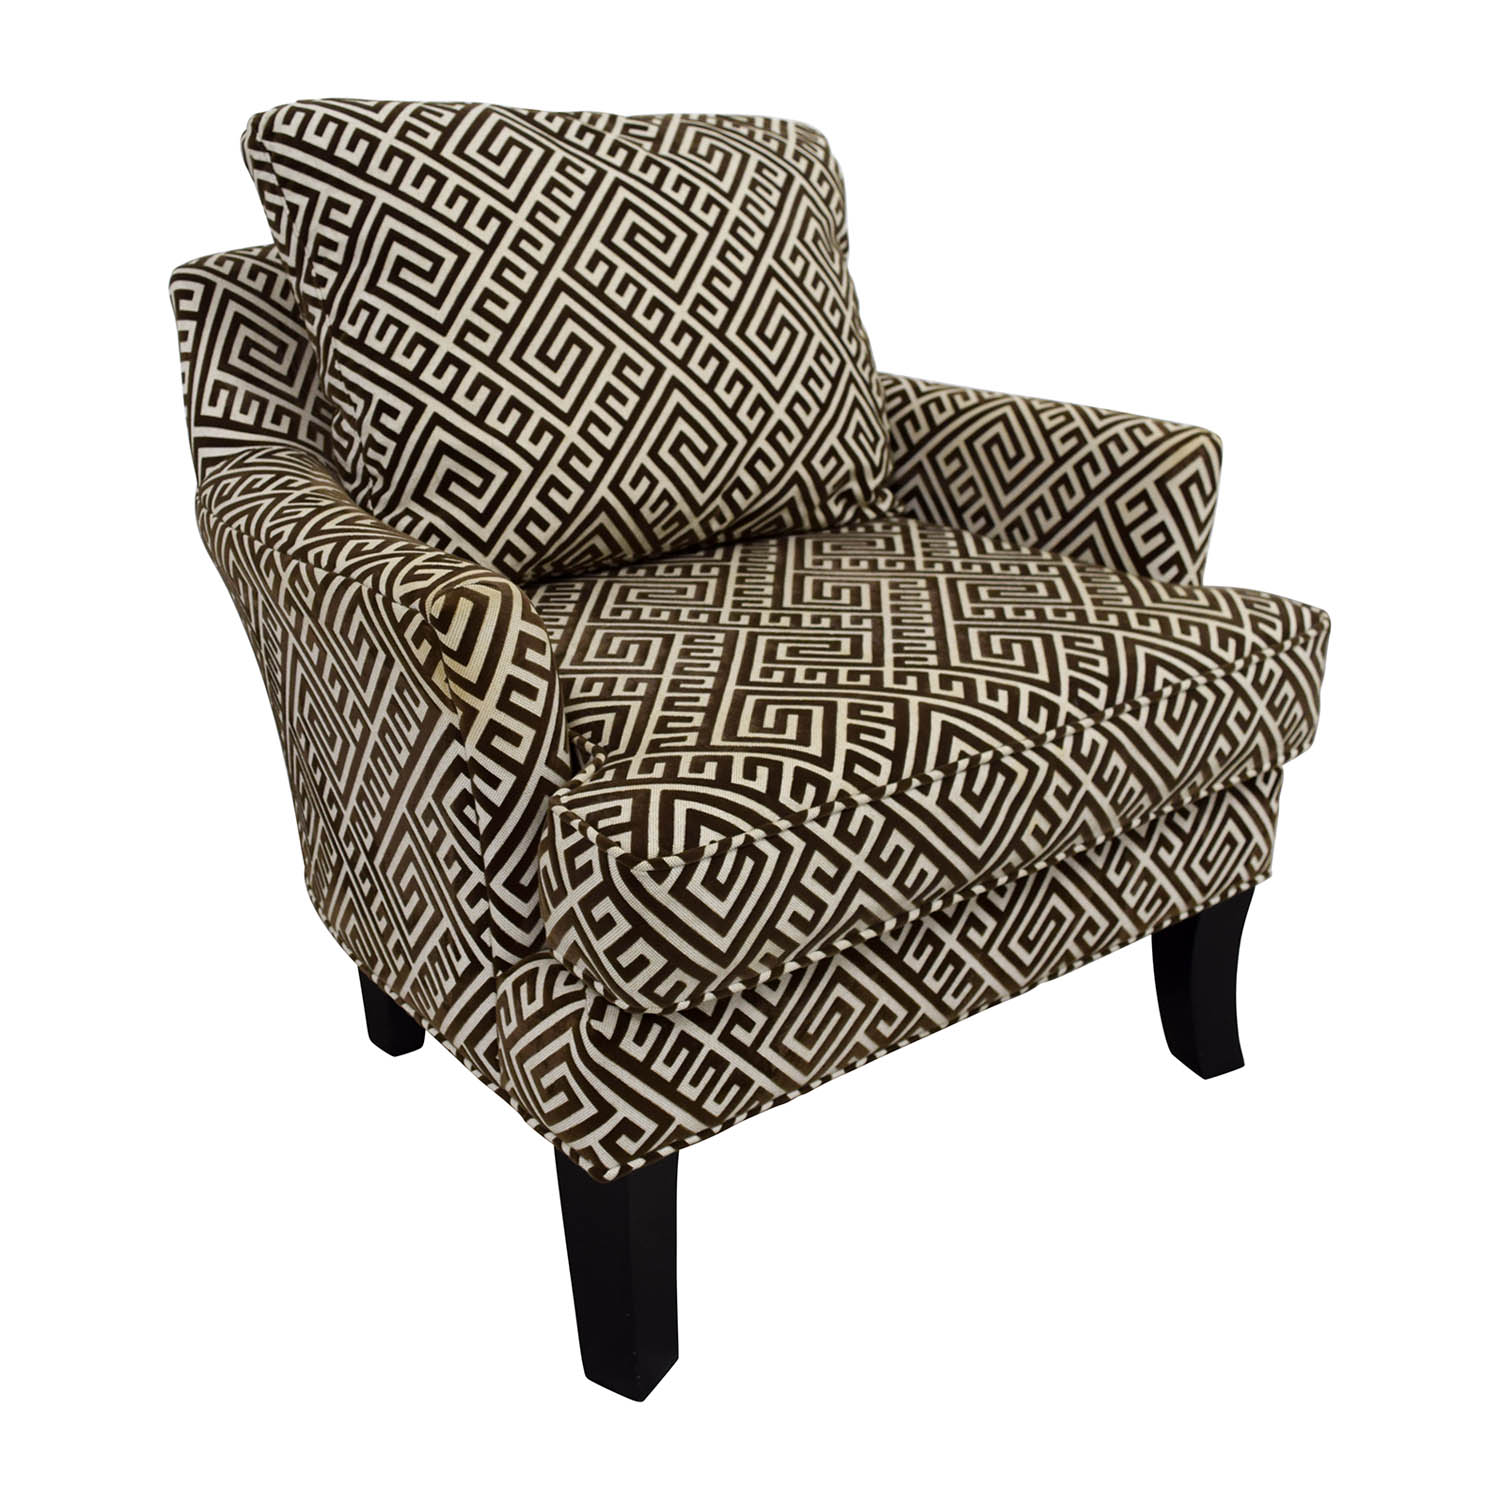 90% OFF   Raymour U0026 Flanigan Raymour U0026 Flanigan Brown And White Accent Arm  Chair / Chairs